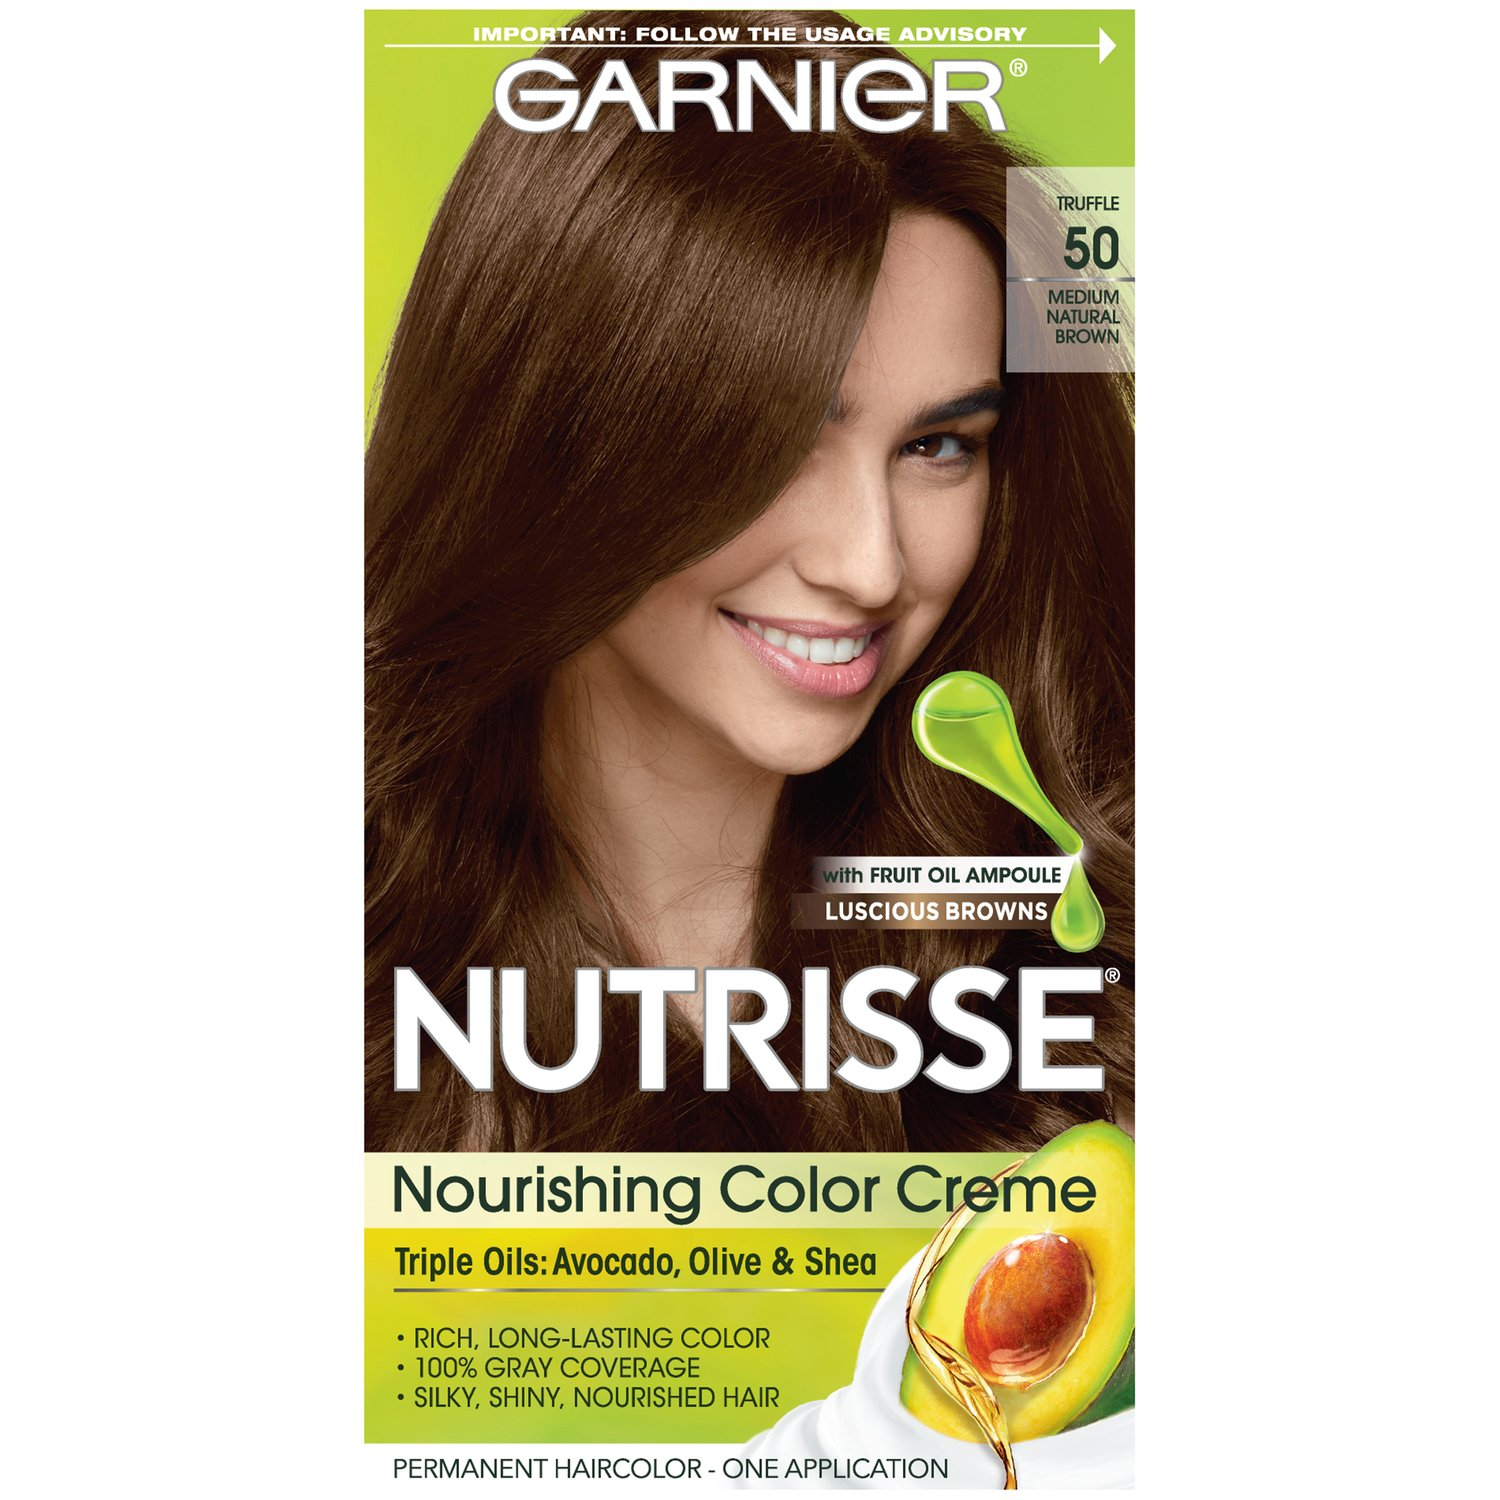 Garnier Nutrisse Nourishing Hair Color Creme, 50 Medium Natural Brown (Truffle) (Packaging